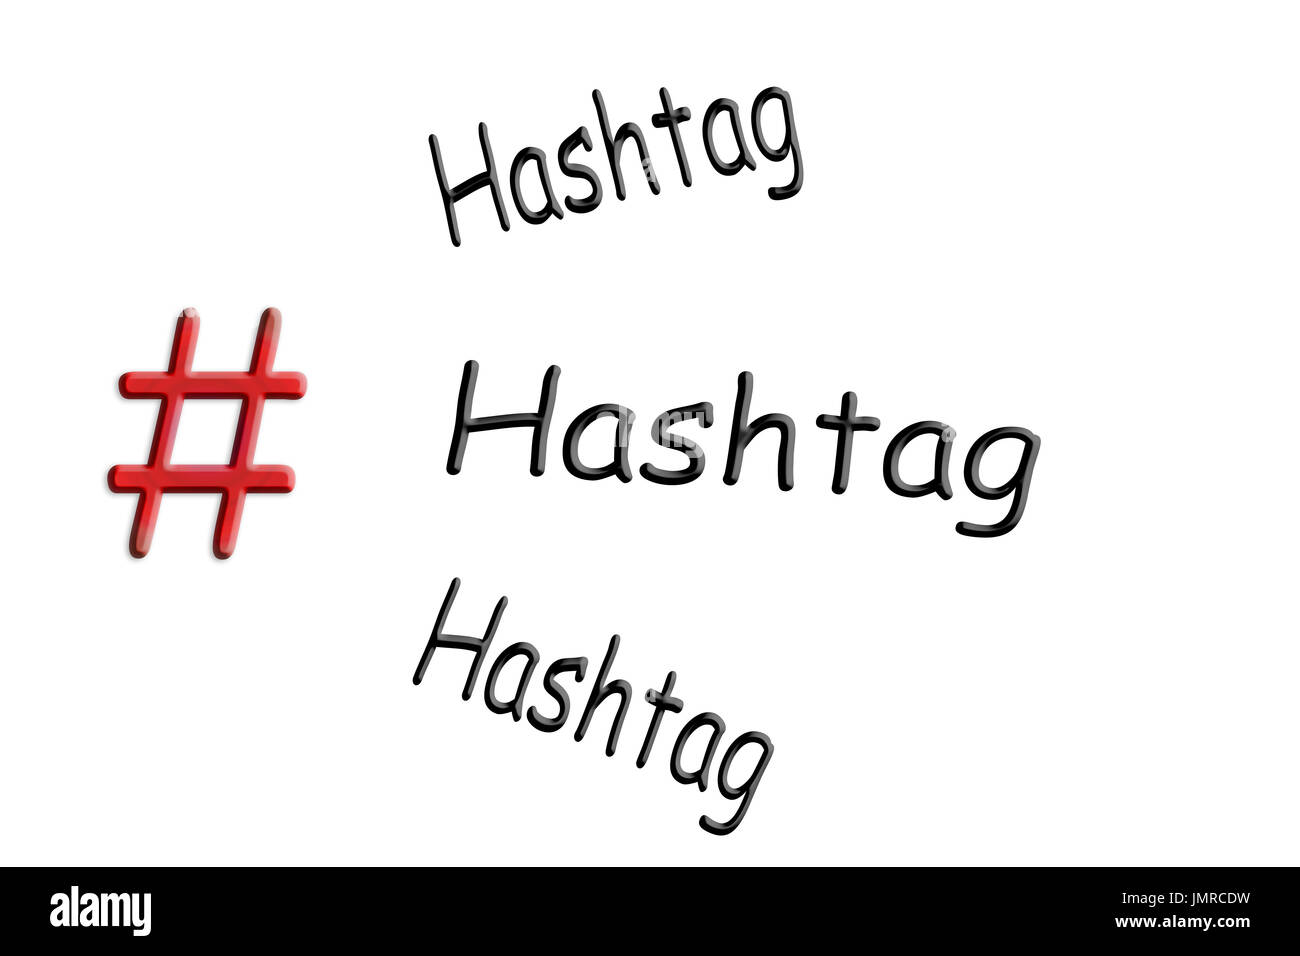 Internet and social media-trend theme # Hashtag sign on white background with caption Hashtag. - Stock Image